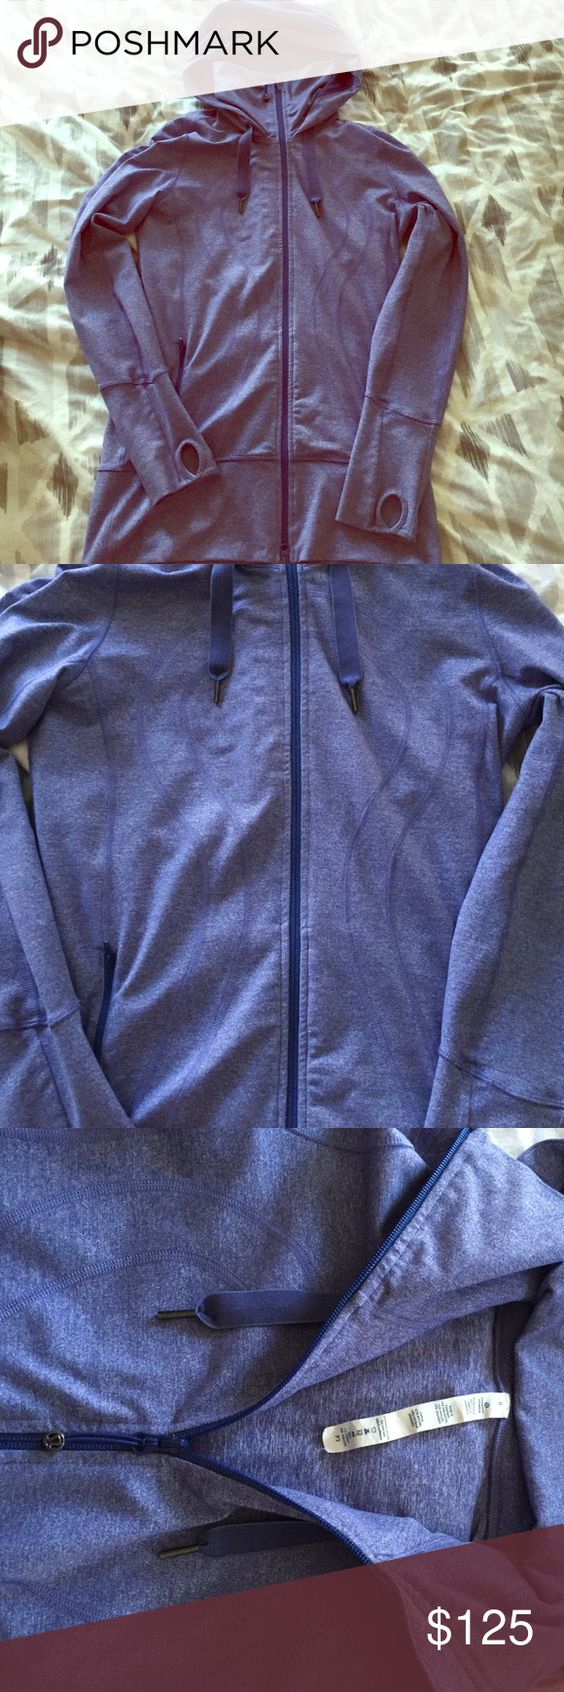 Lululemon scuba hoodie! LIKE NEW literally no signs of wear--worn gently a few times. Dri fit, stretch, blue-violet color. Size 8(M). Hooded and high neck when zipped. lululemon athletica Jackets & Coats